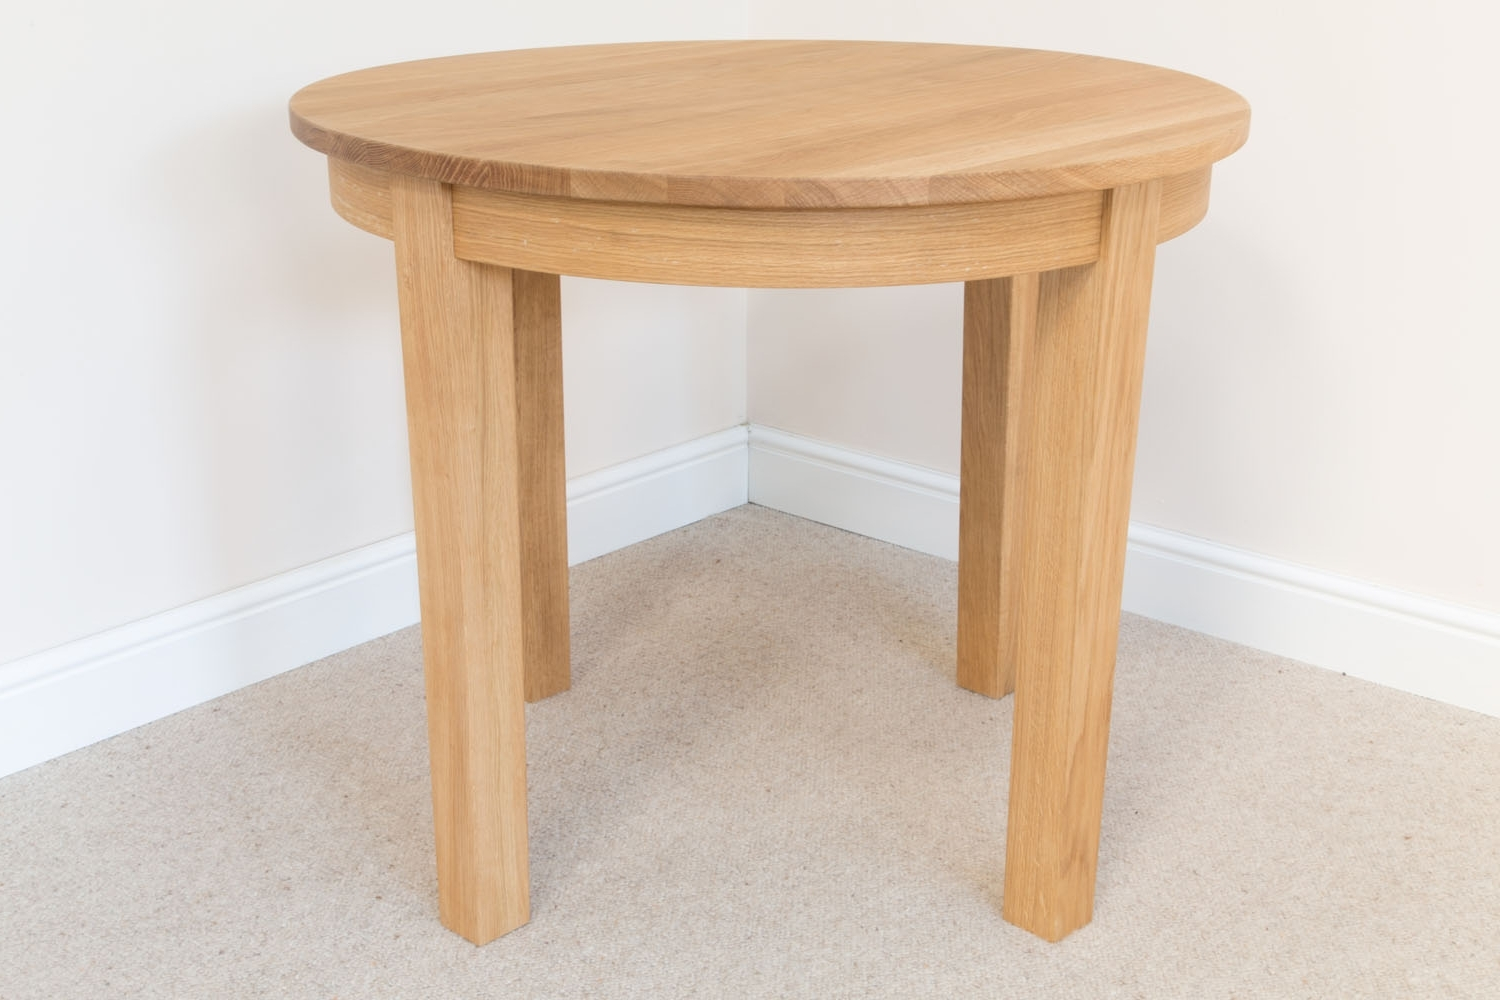 90Cm Round Baltic Premium Solid Oak Table From Top Furniture Ltd regarding Most Up-to-Date Round Oak Dining Tables And Chairs